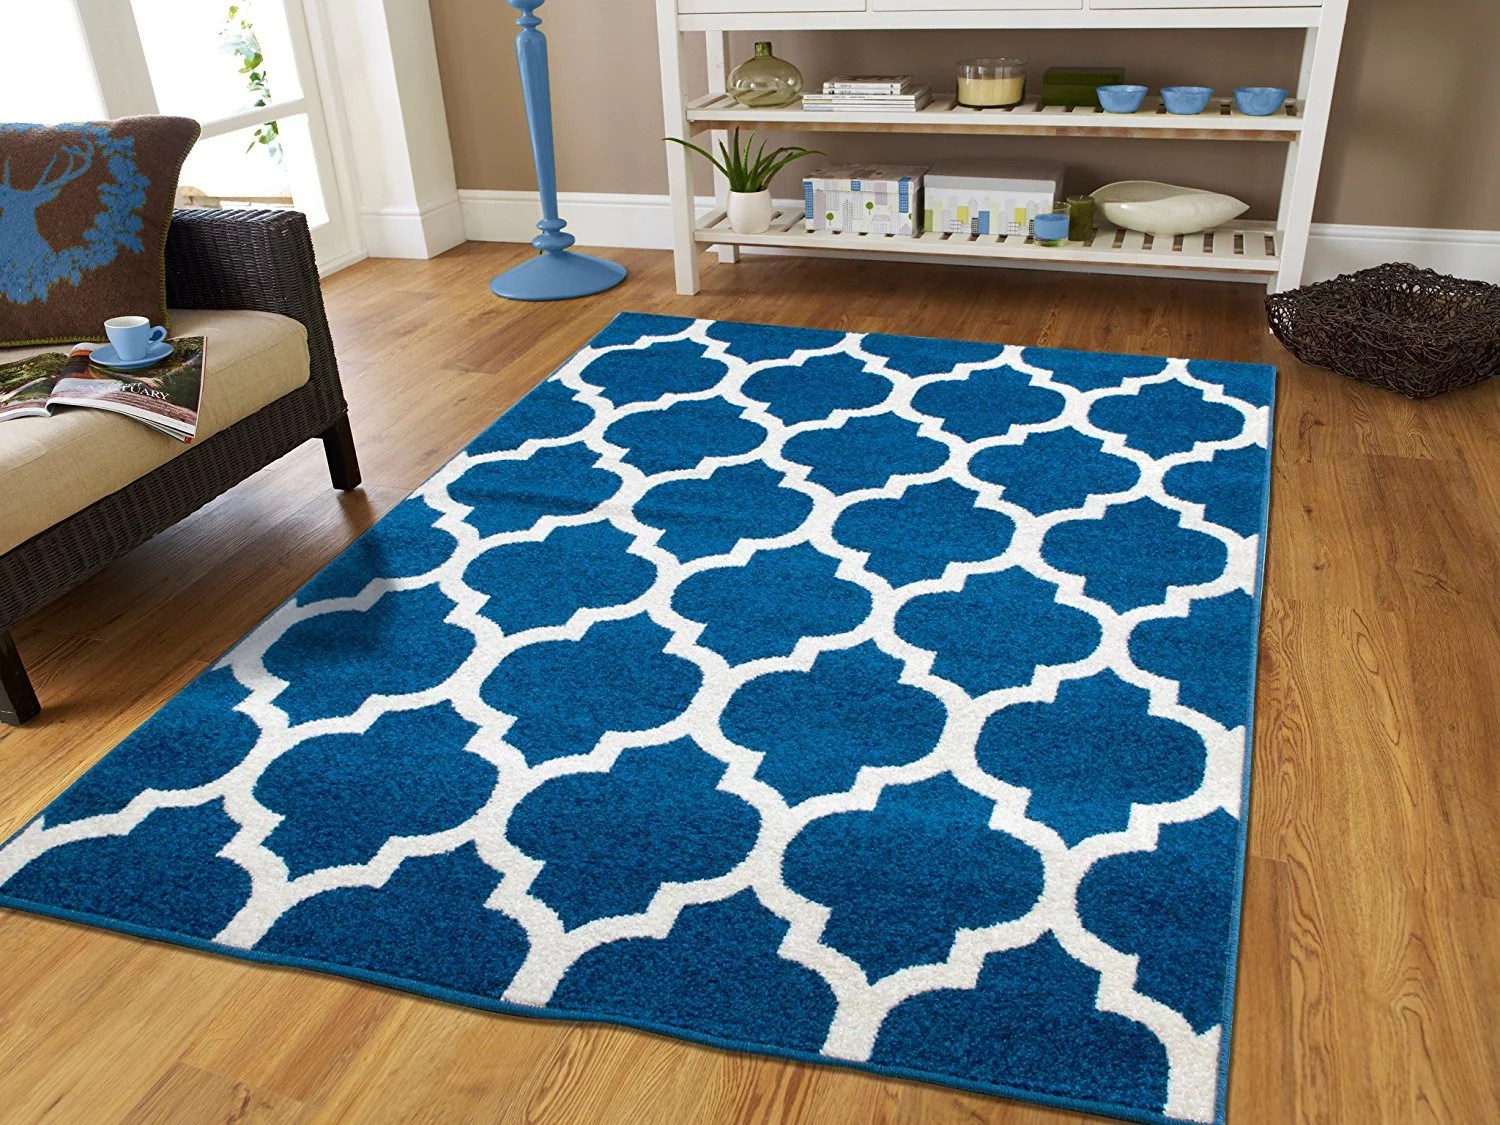 living rooms with blue area rugs room white walls and brown furniture contemporary 5x7 on clearance 5 by 7 rug for walmart com